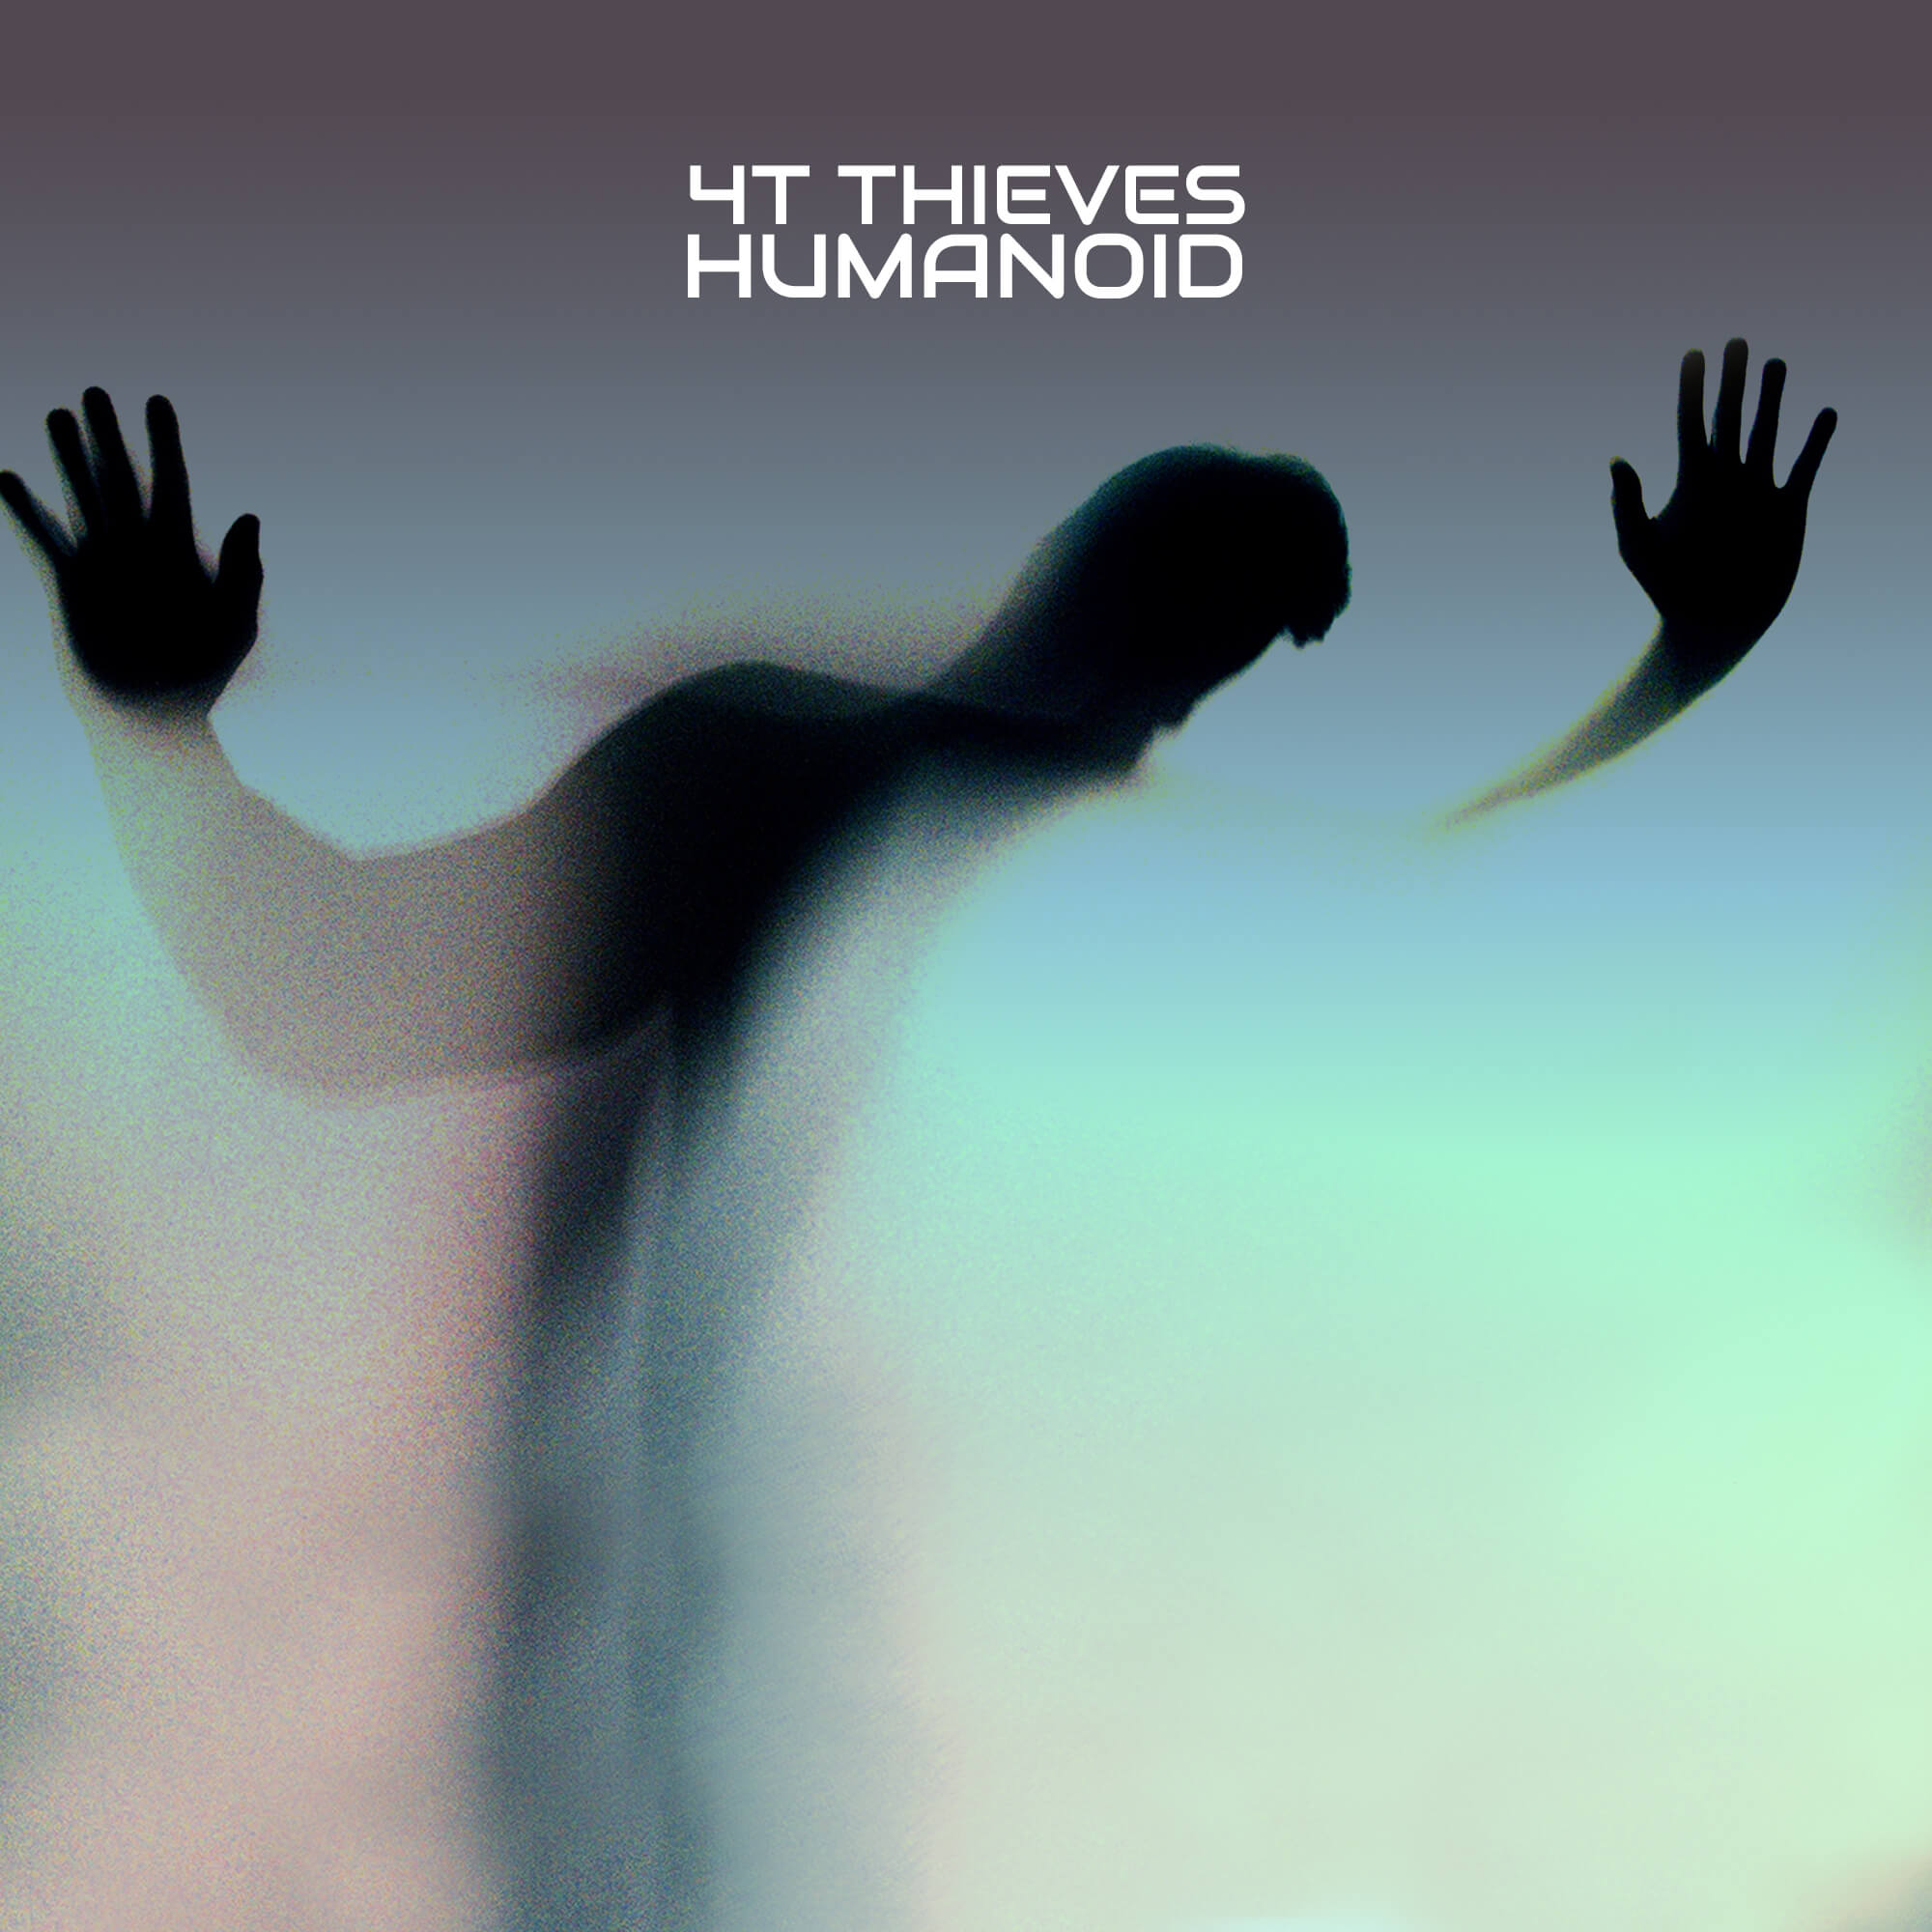 Humanoid - 4T Thieves